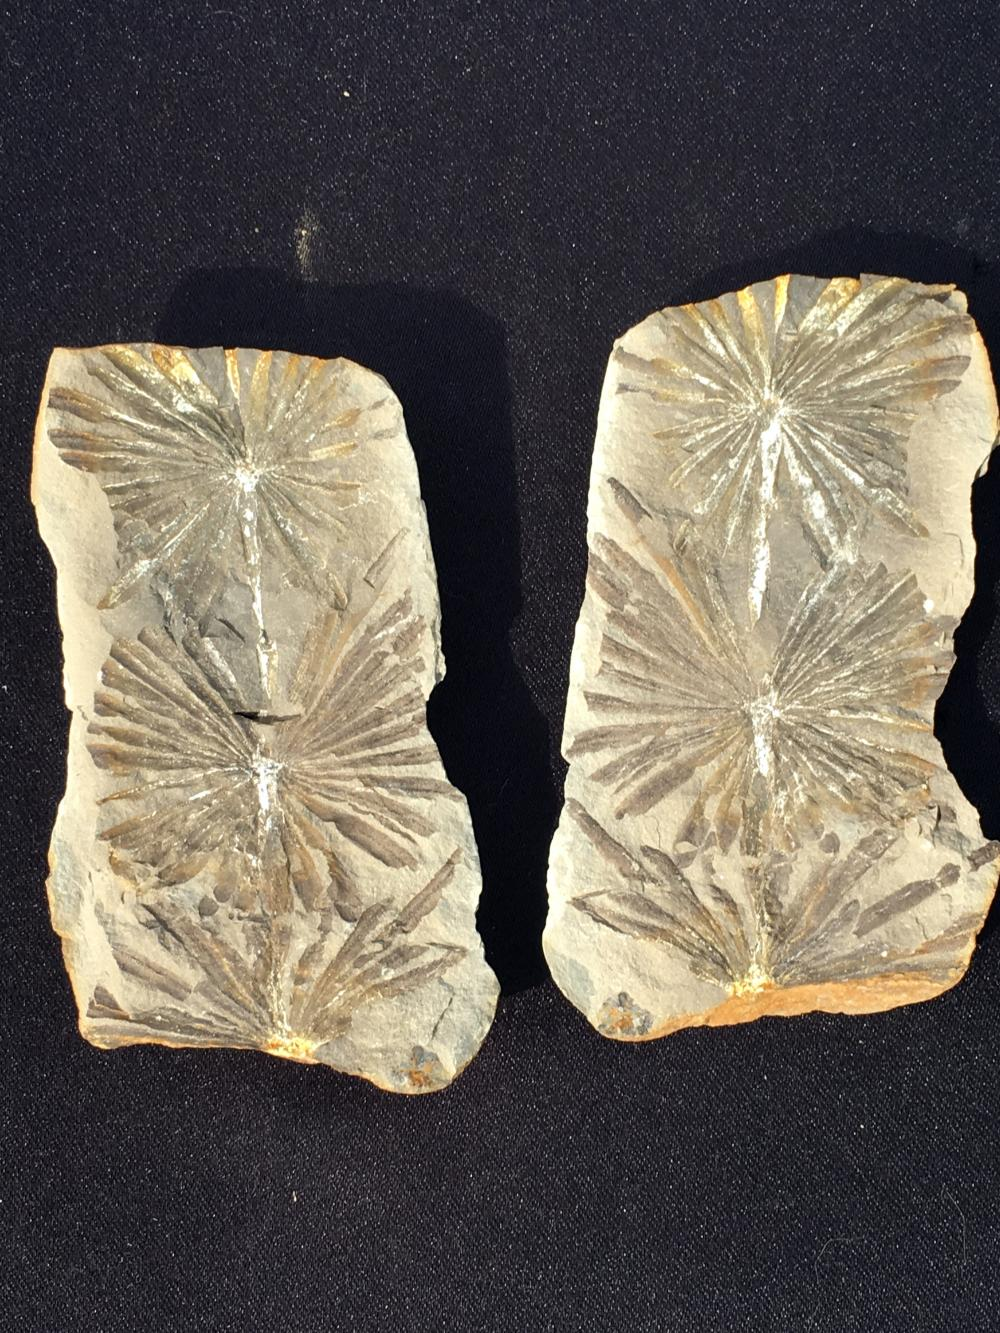 Fern, Rock, Fossil, Natural, Collectible, Specimen, Mazon Creek